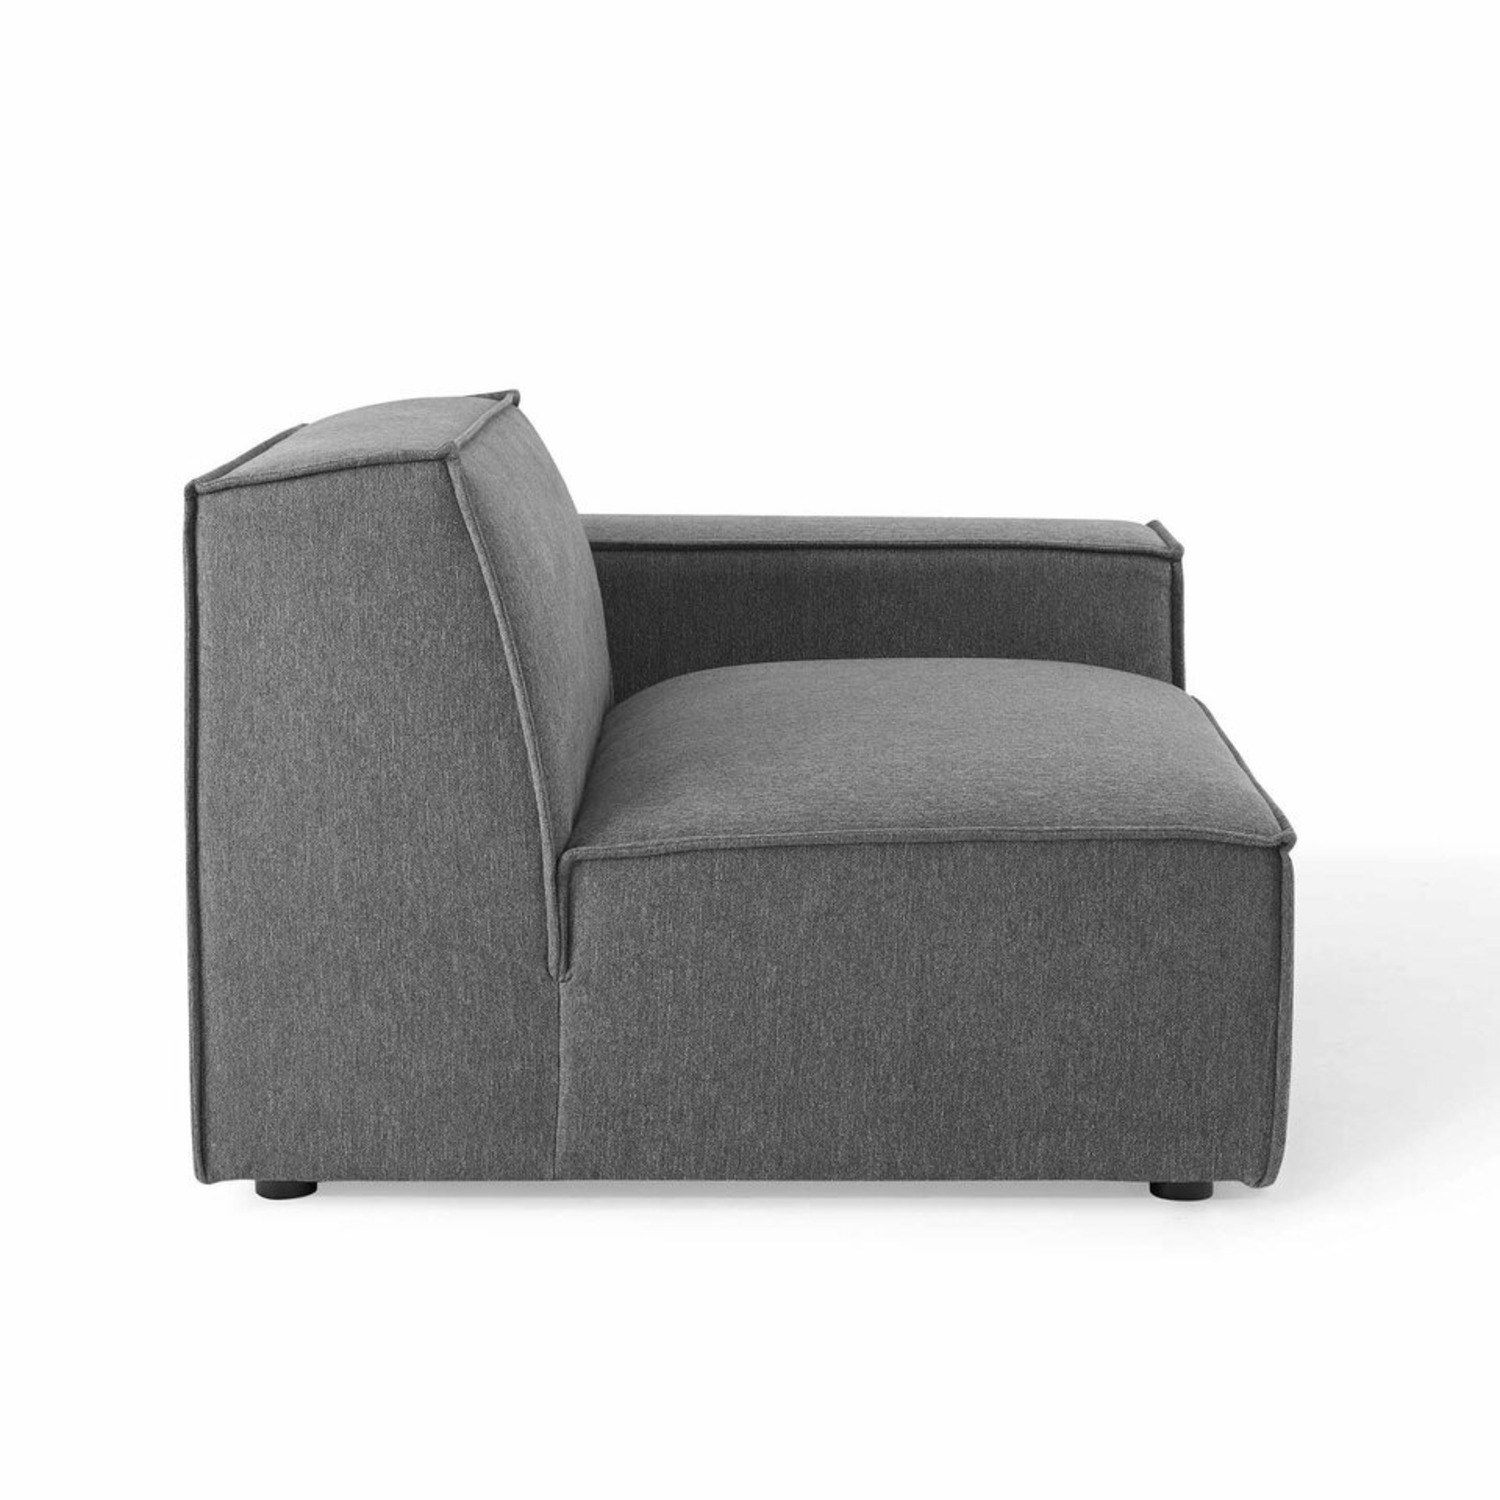 5-Piece Sectional Sofa In CharcoalW/ Piping Detail - image-3